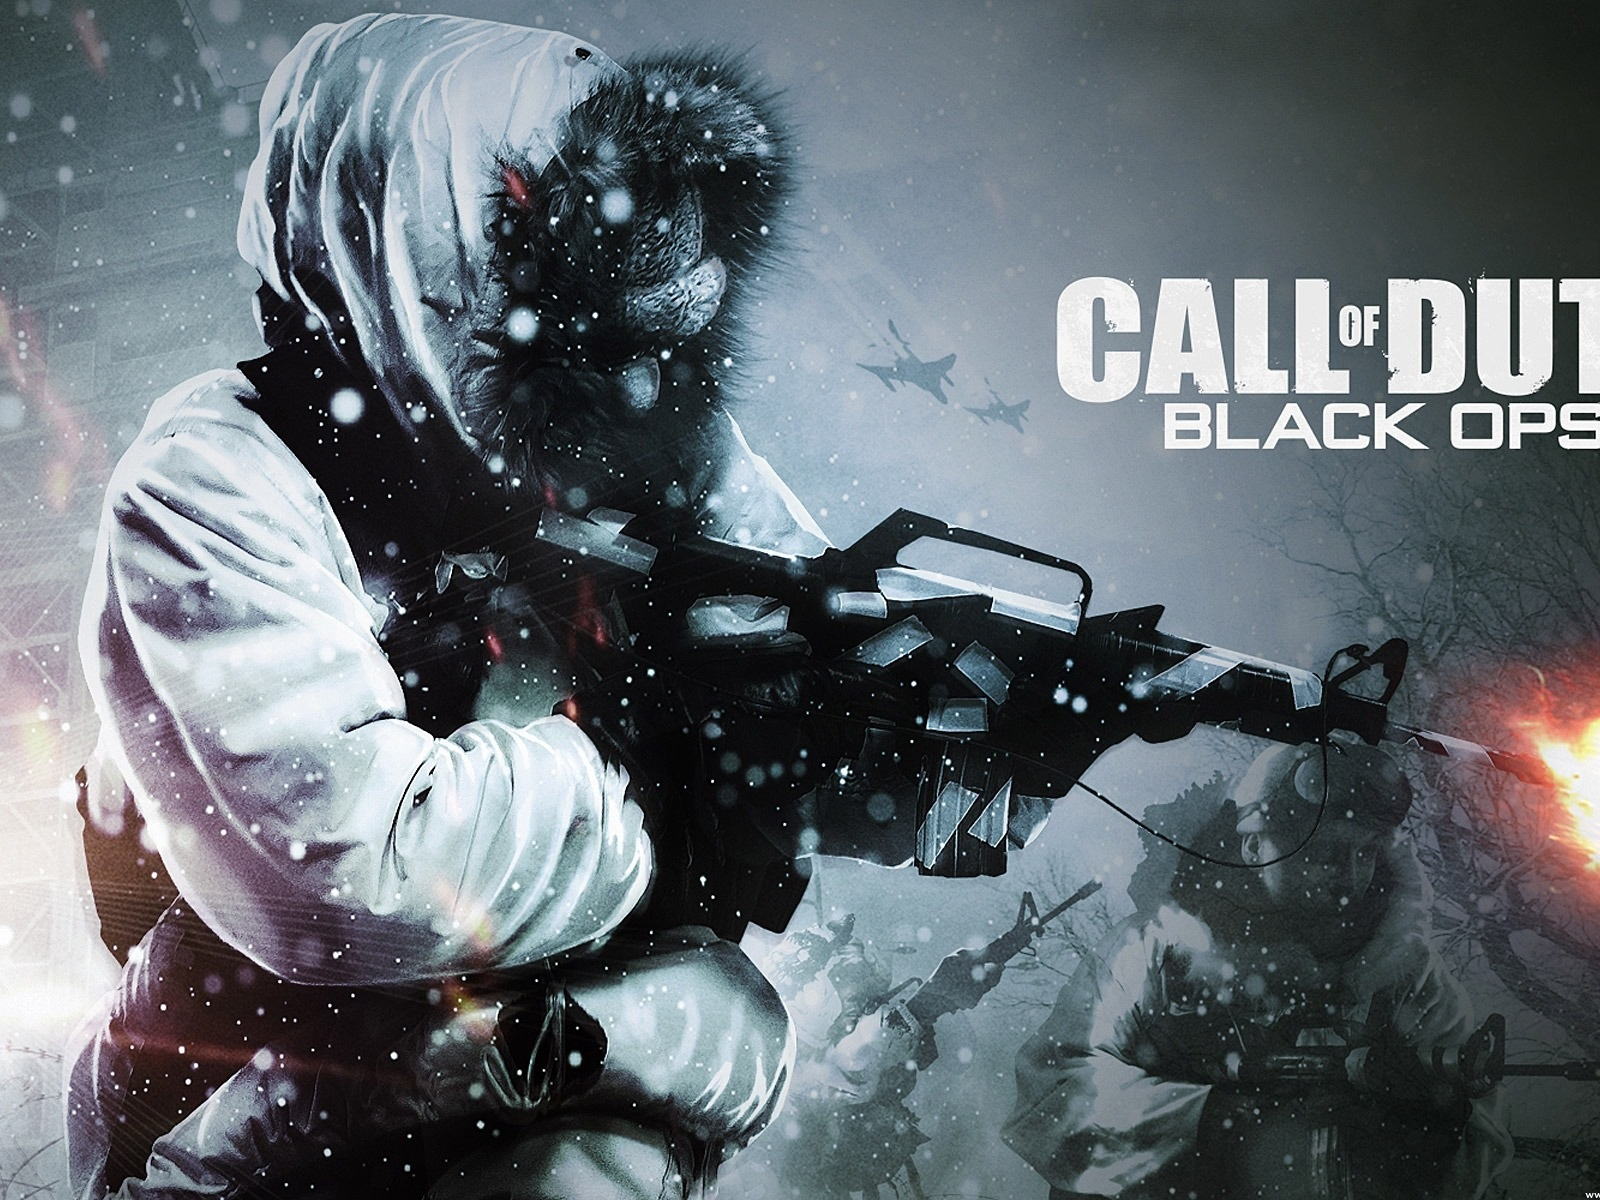 Wallpaper Call Of Duty Black Ops 1920x1200 Hd Picture Image